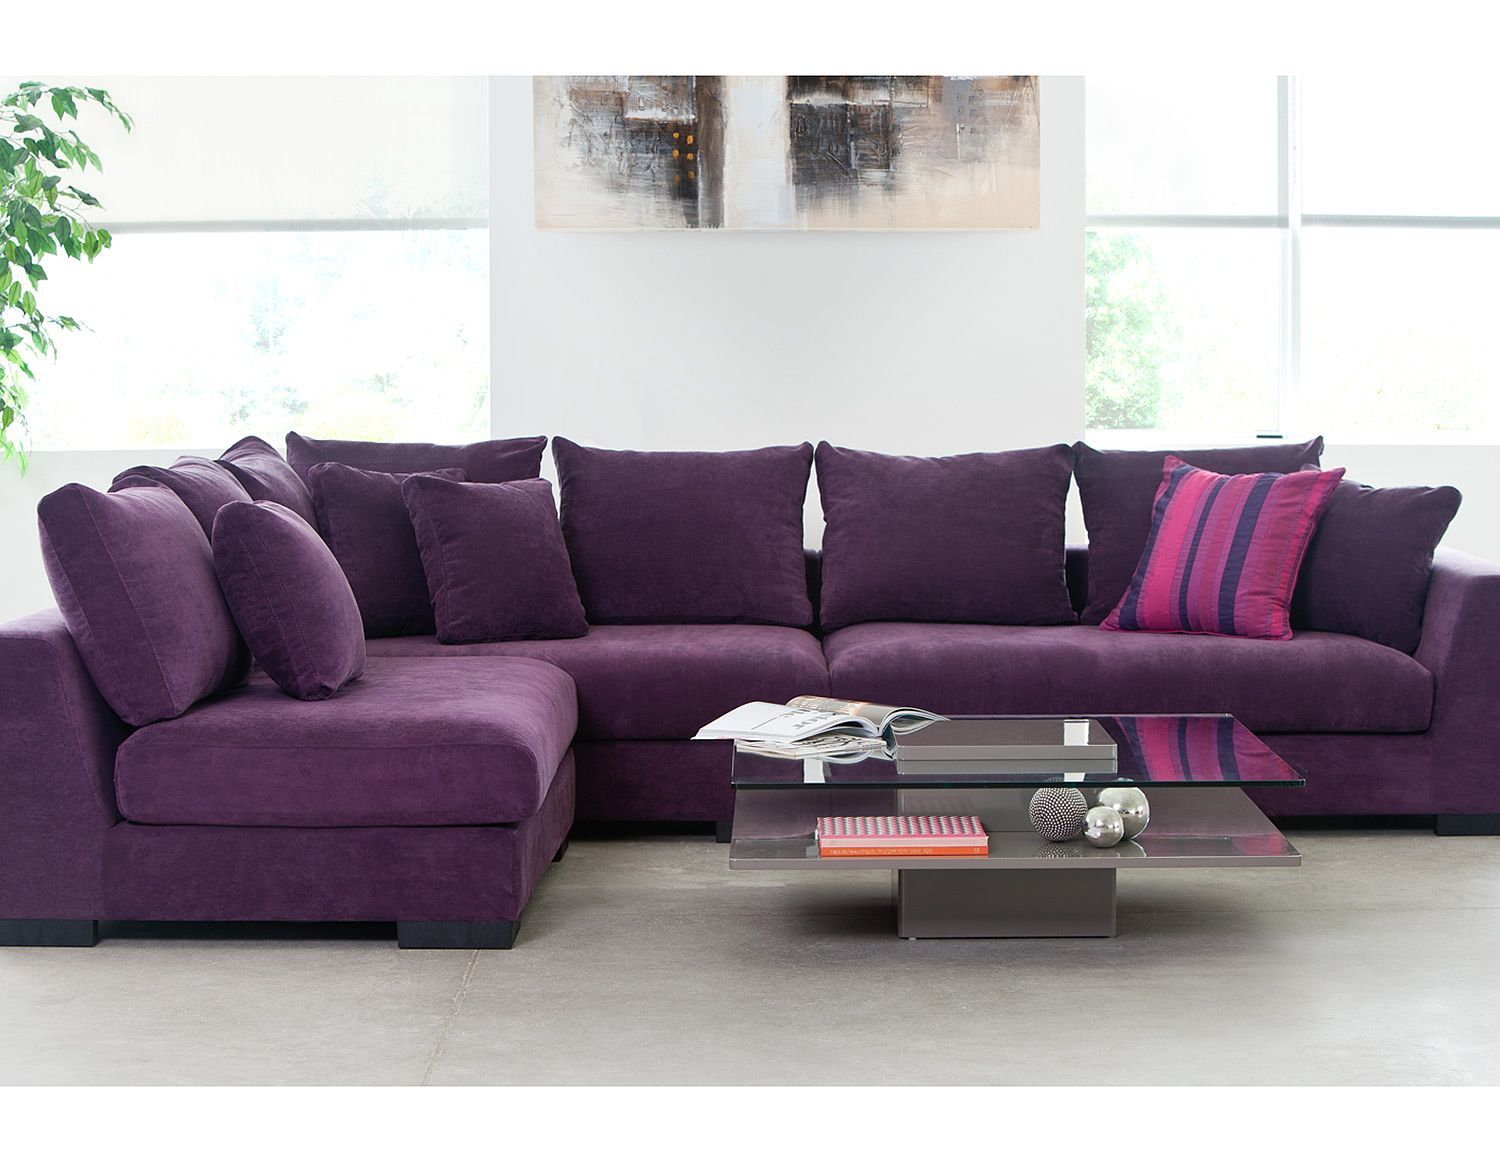 sofa sets designs and colours in kenya sofas uk plc living room sectional cooper purple faints a